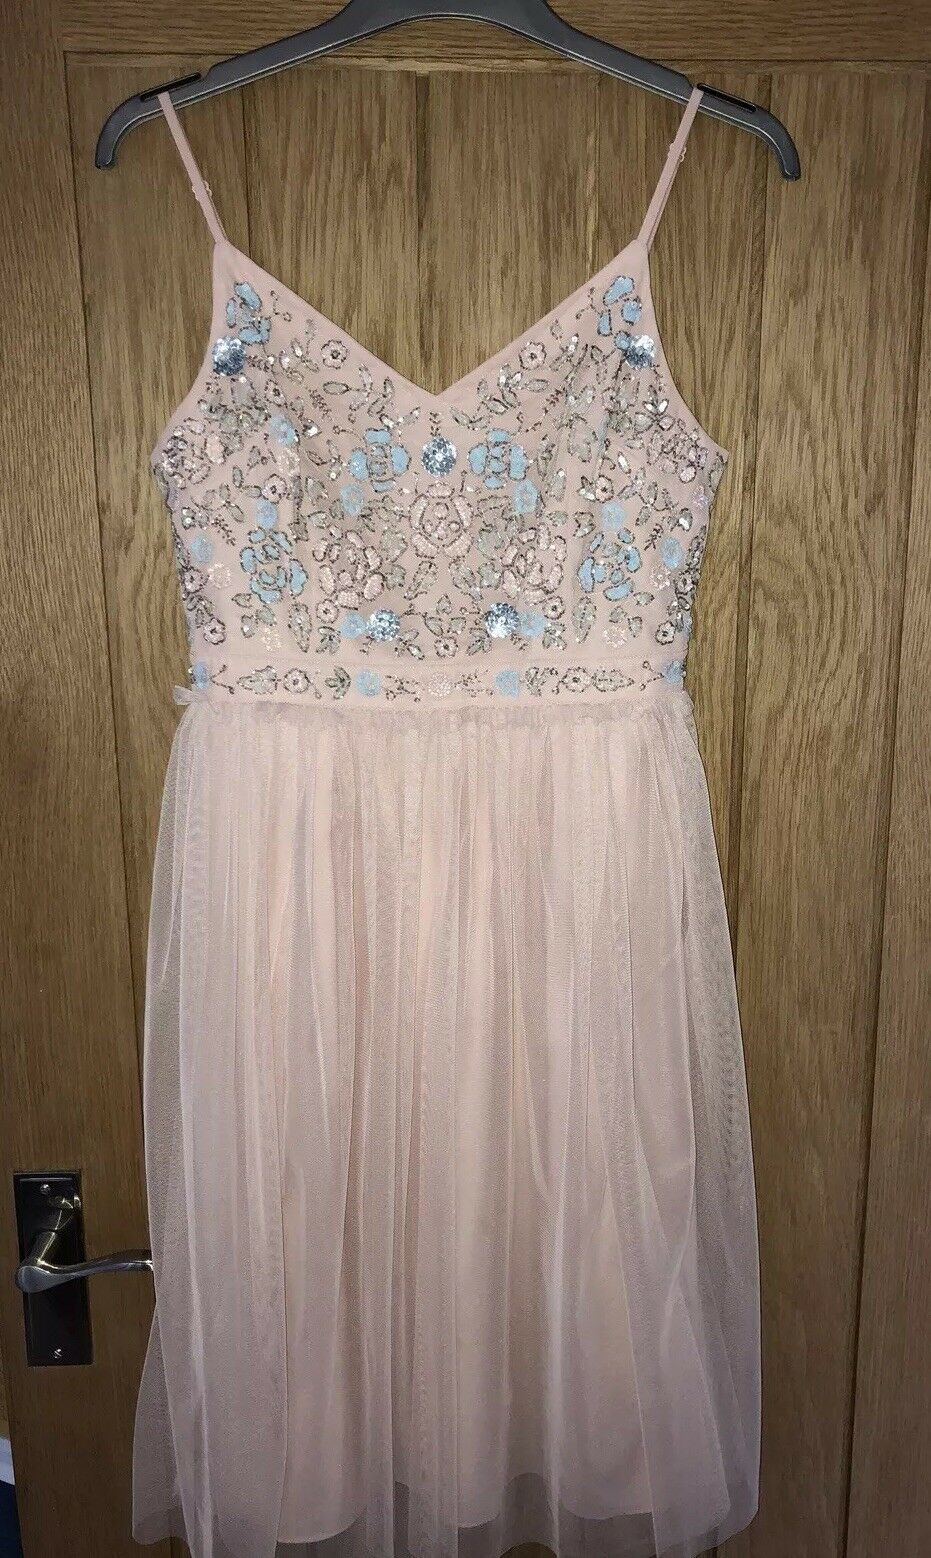 French connection dress Size 8 Bridesmaid Prom Dress